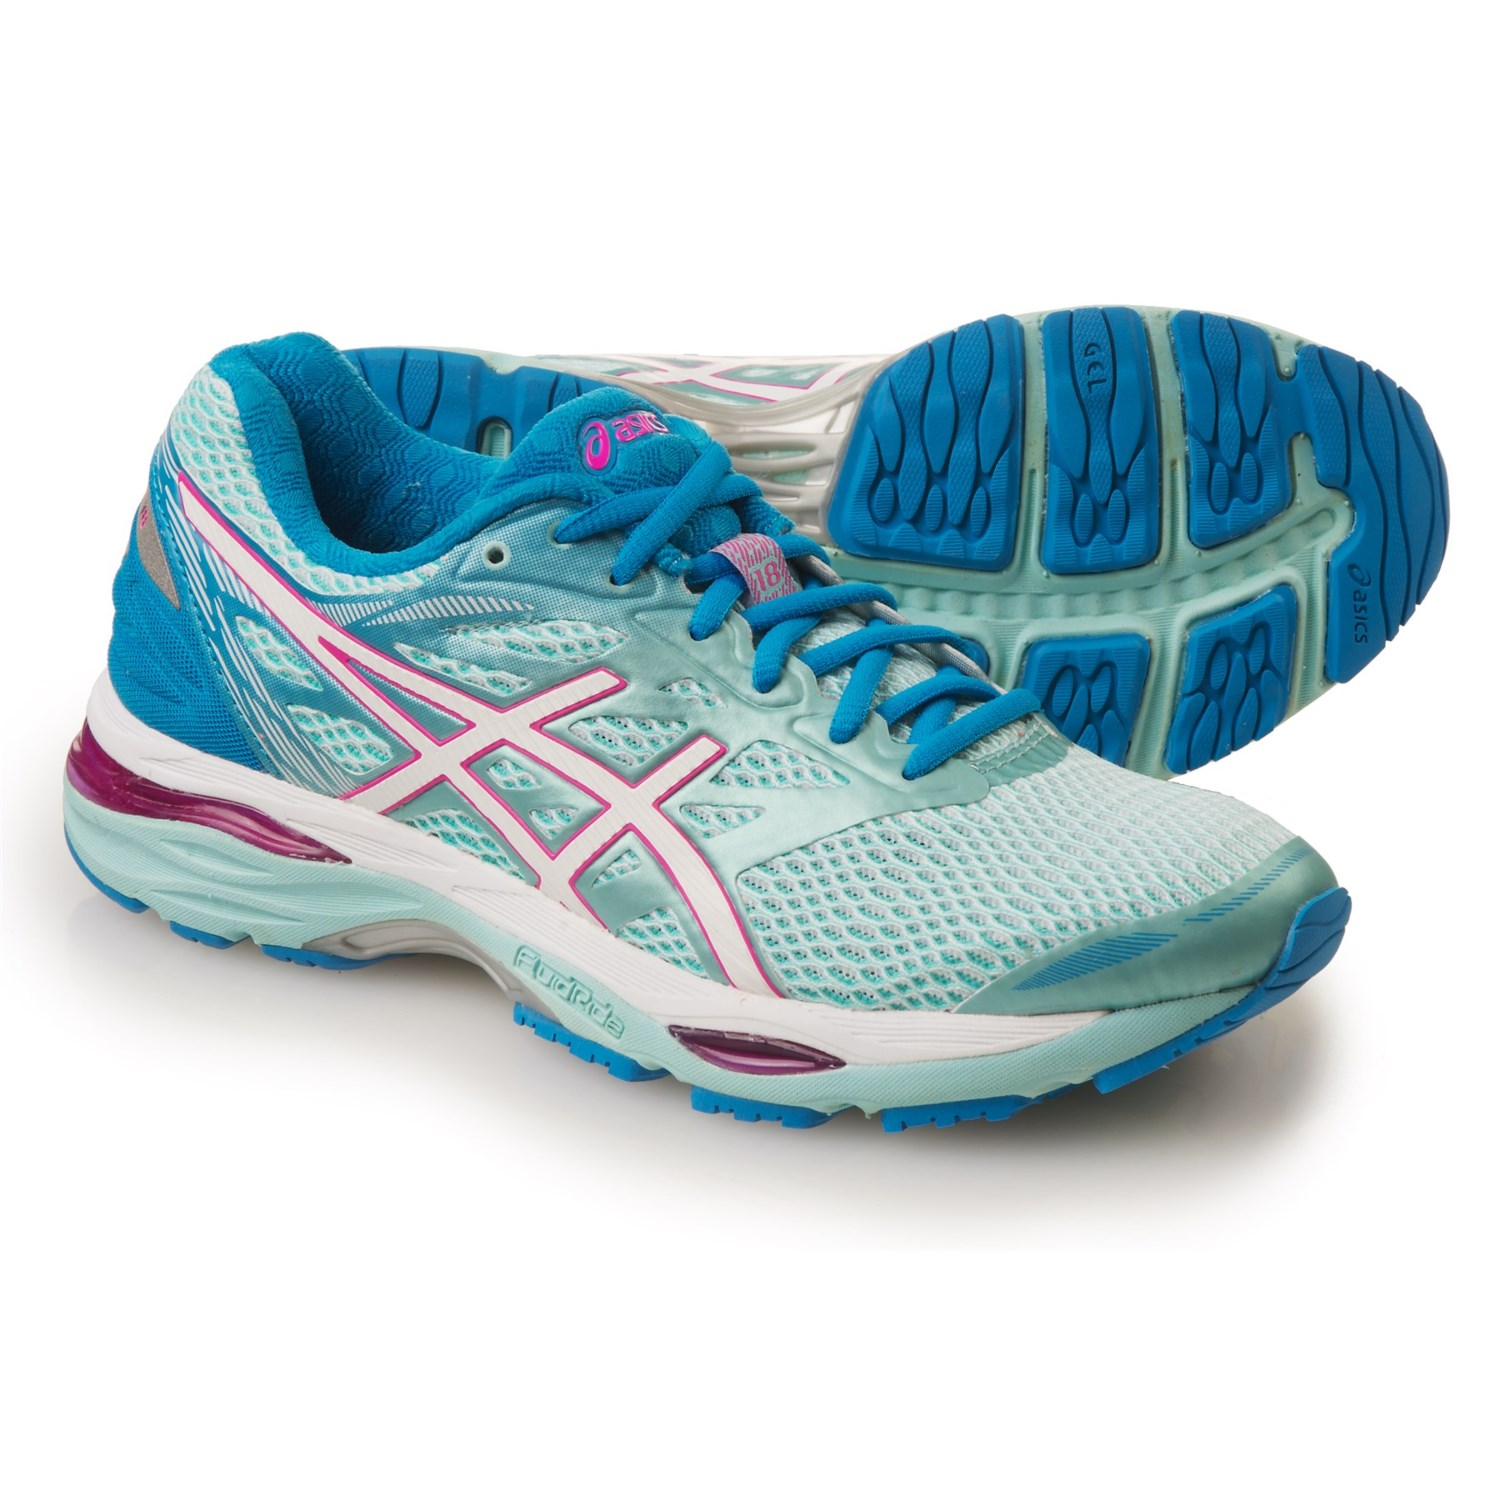 Academy Sports Womens Asic Sonoma Shoes